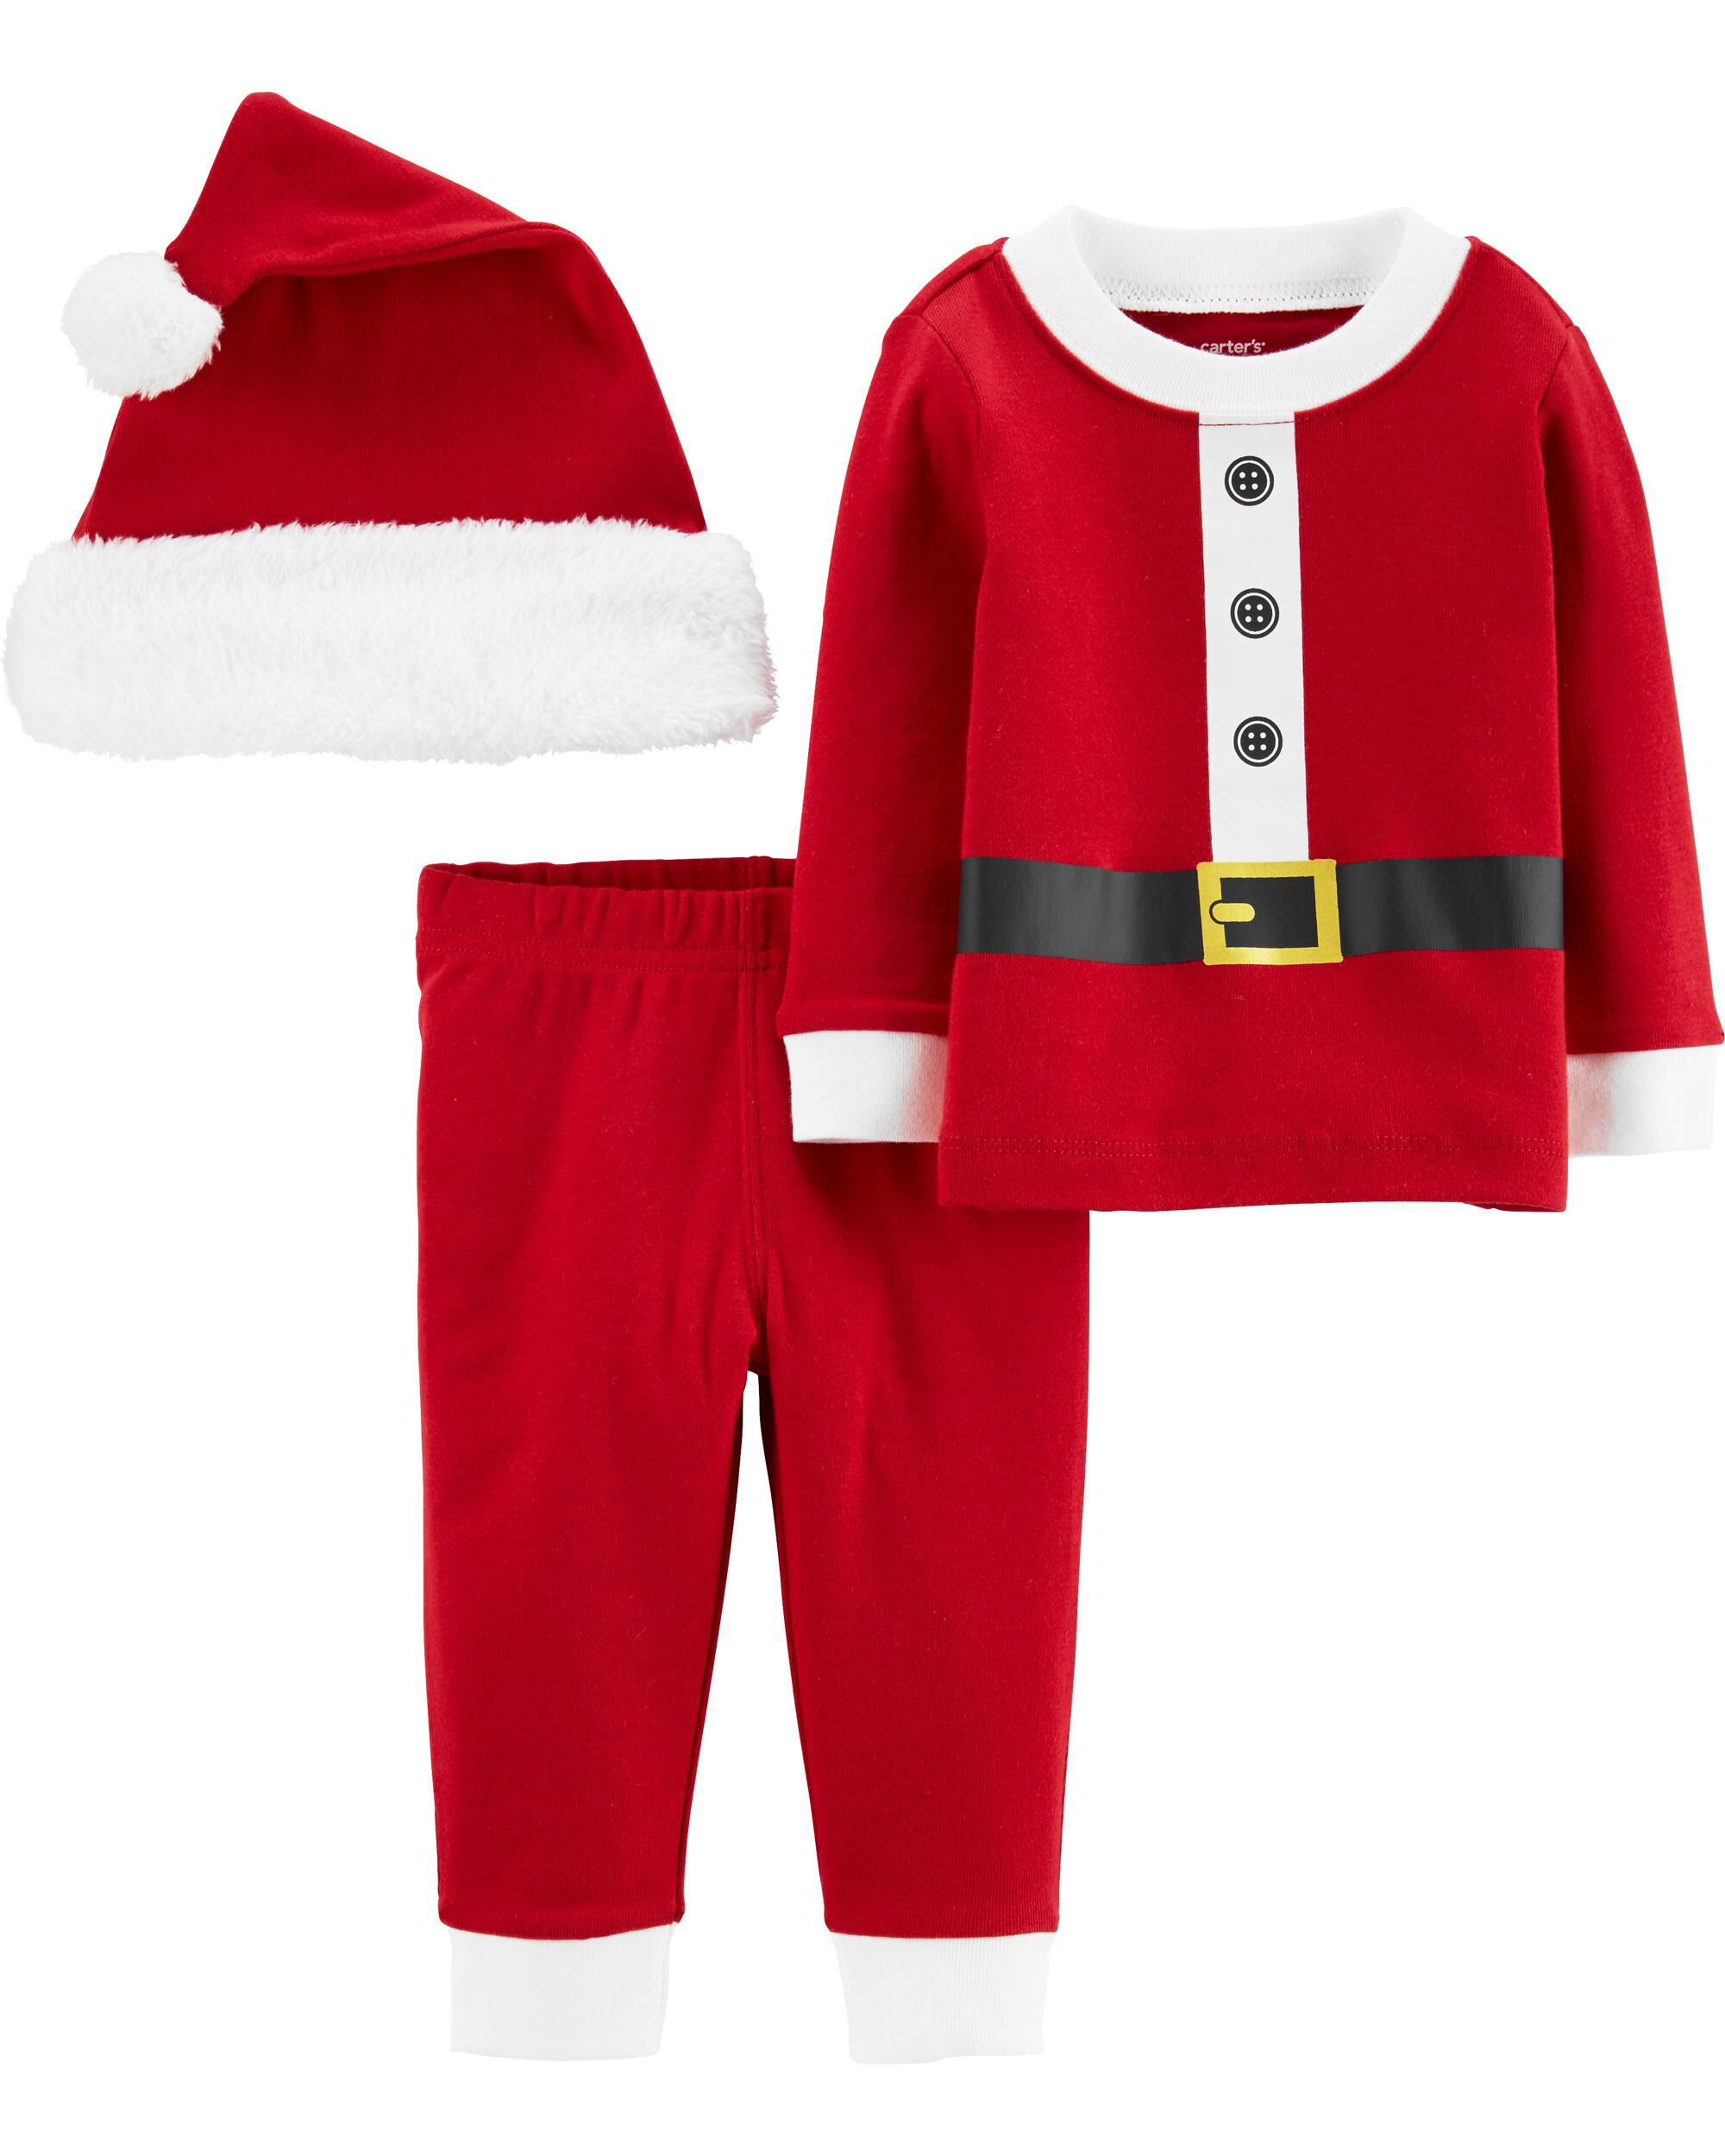 NWT Infant Girls 3 Piece outfit Carter/'s Cap Cardigan Pants My 1st Christmas